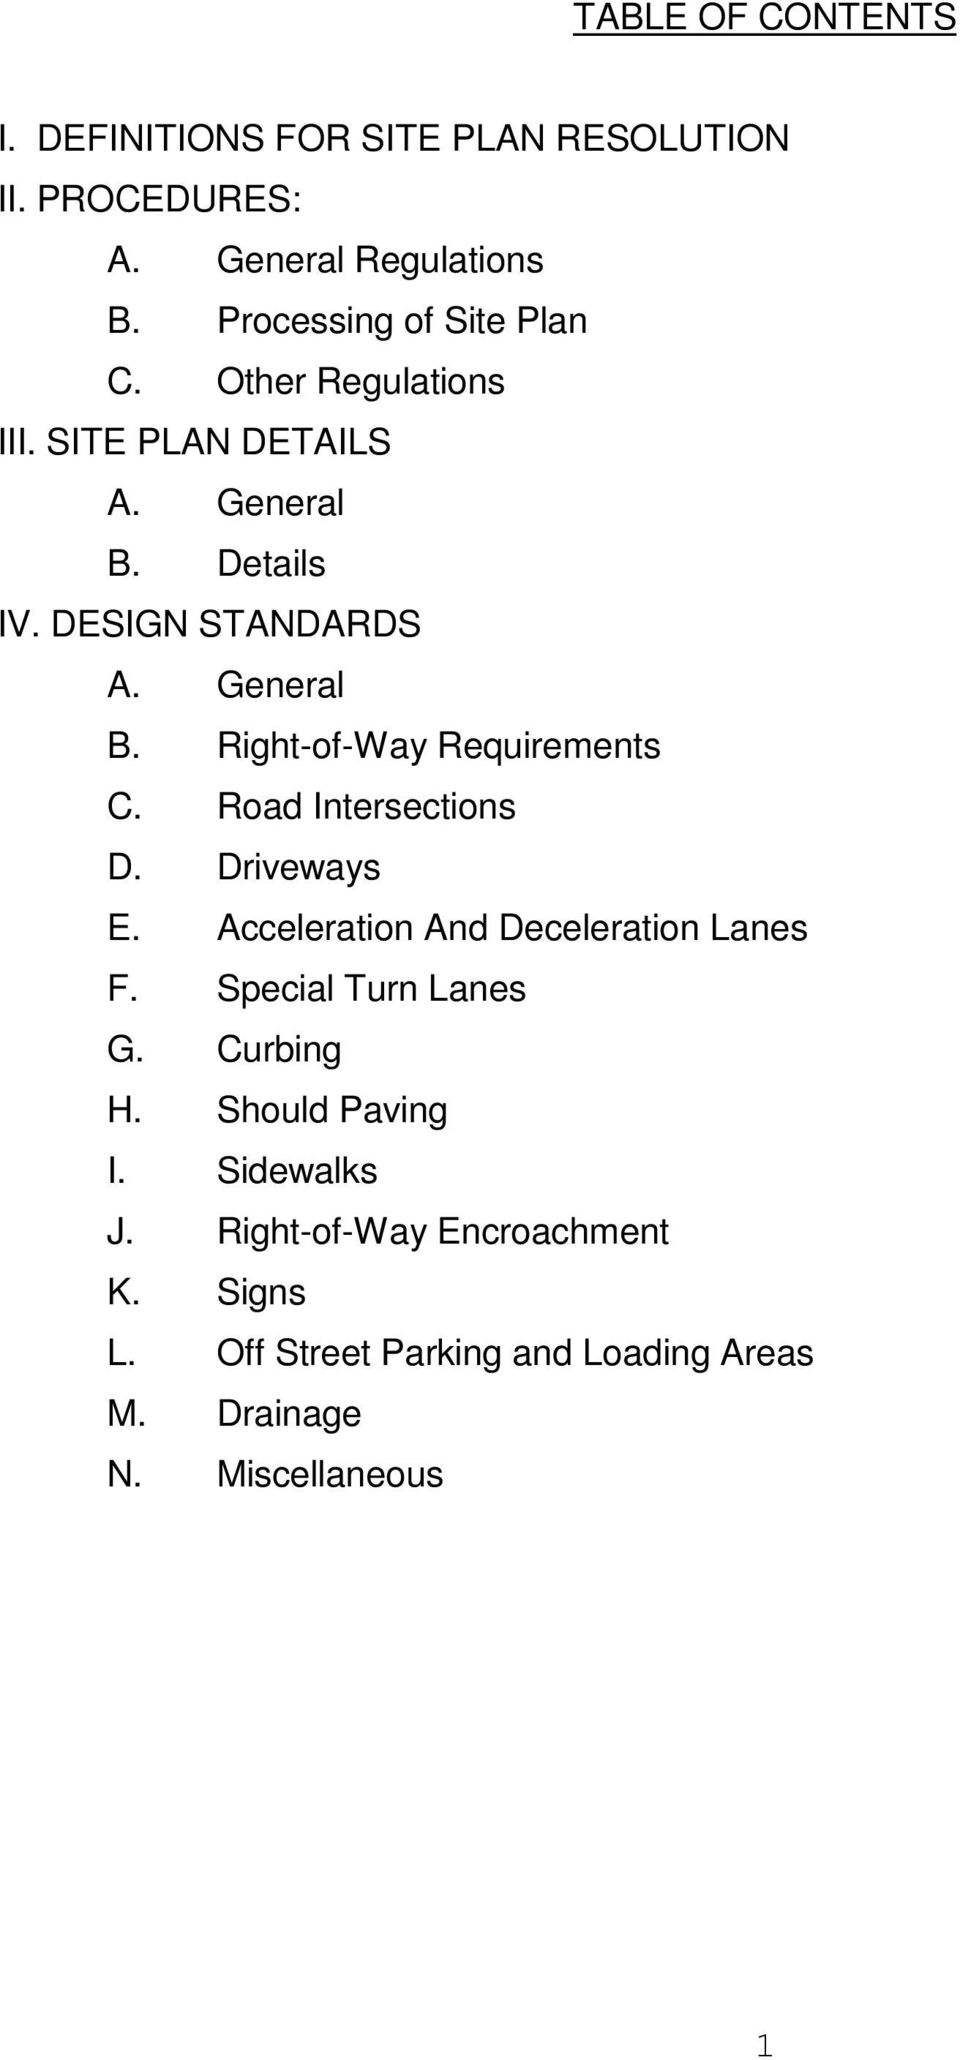 Road Intersections D. Driveways E. Acceleration And Deceleration Lanes F. Special Turn Lanes G. Curbing H. Should Paving I.